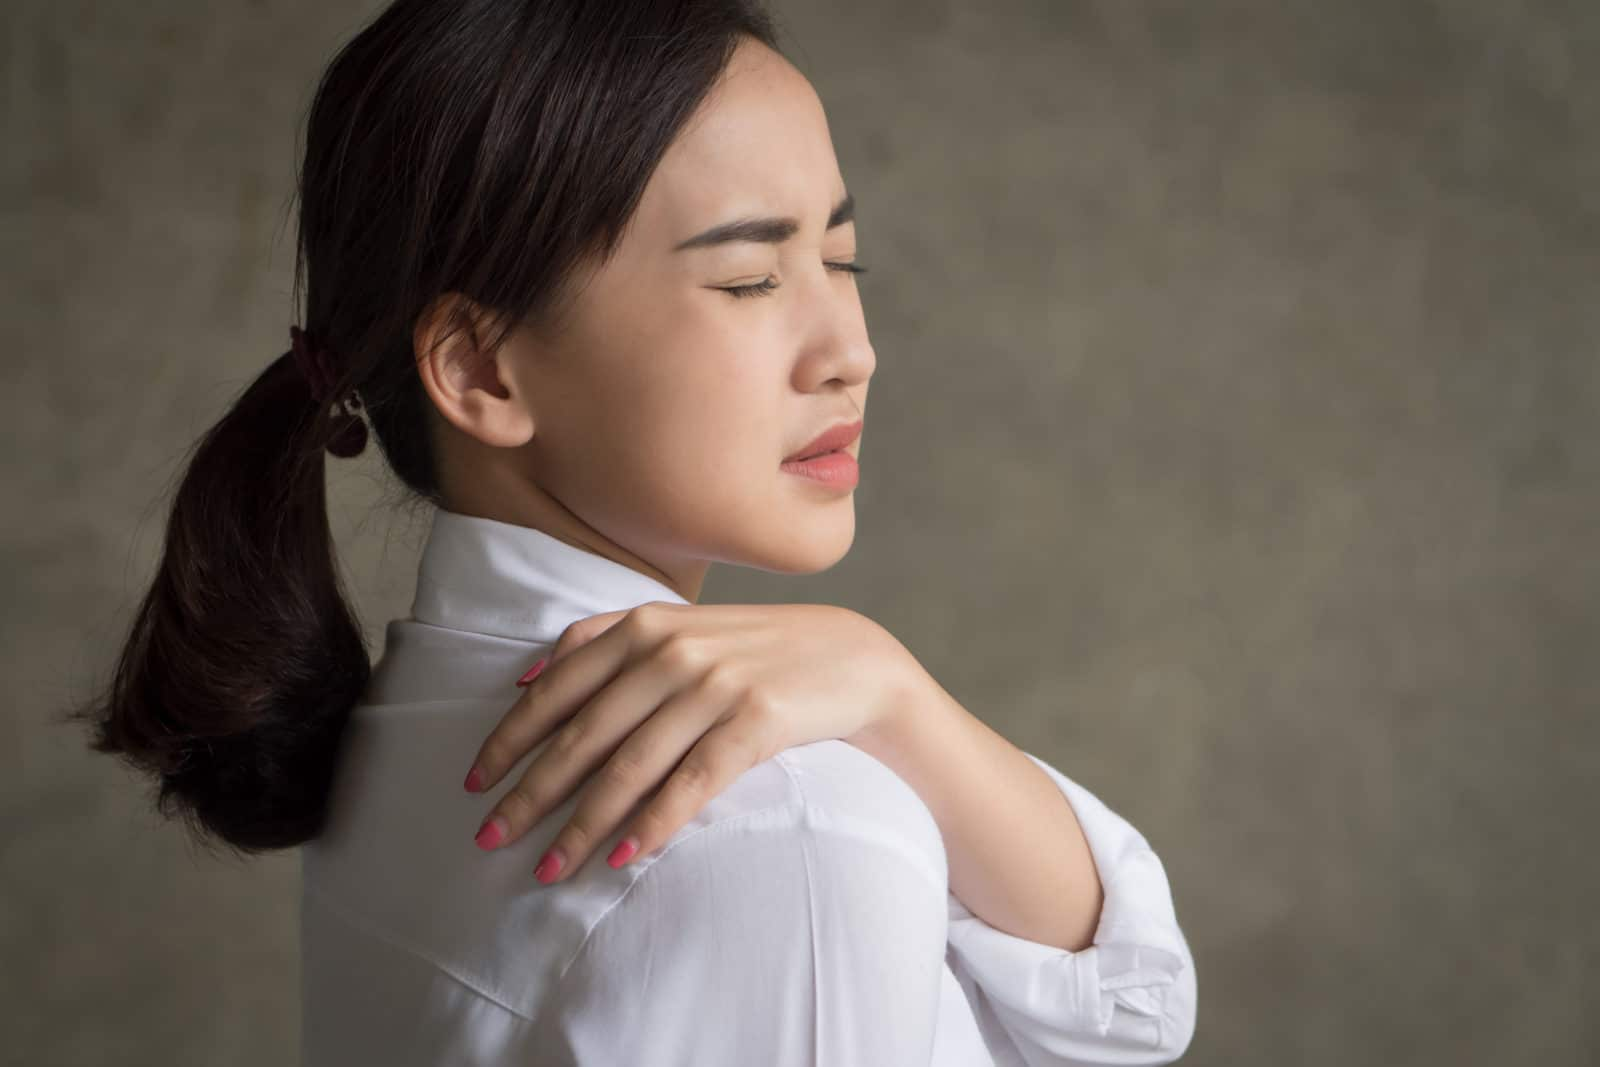 6 Common Warning Signs of Fibromyalgia